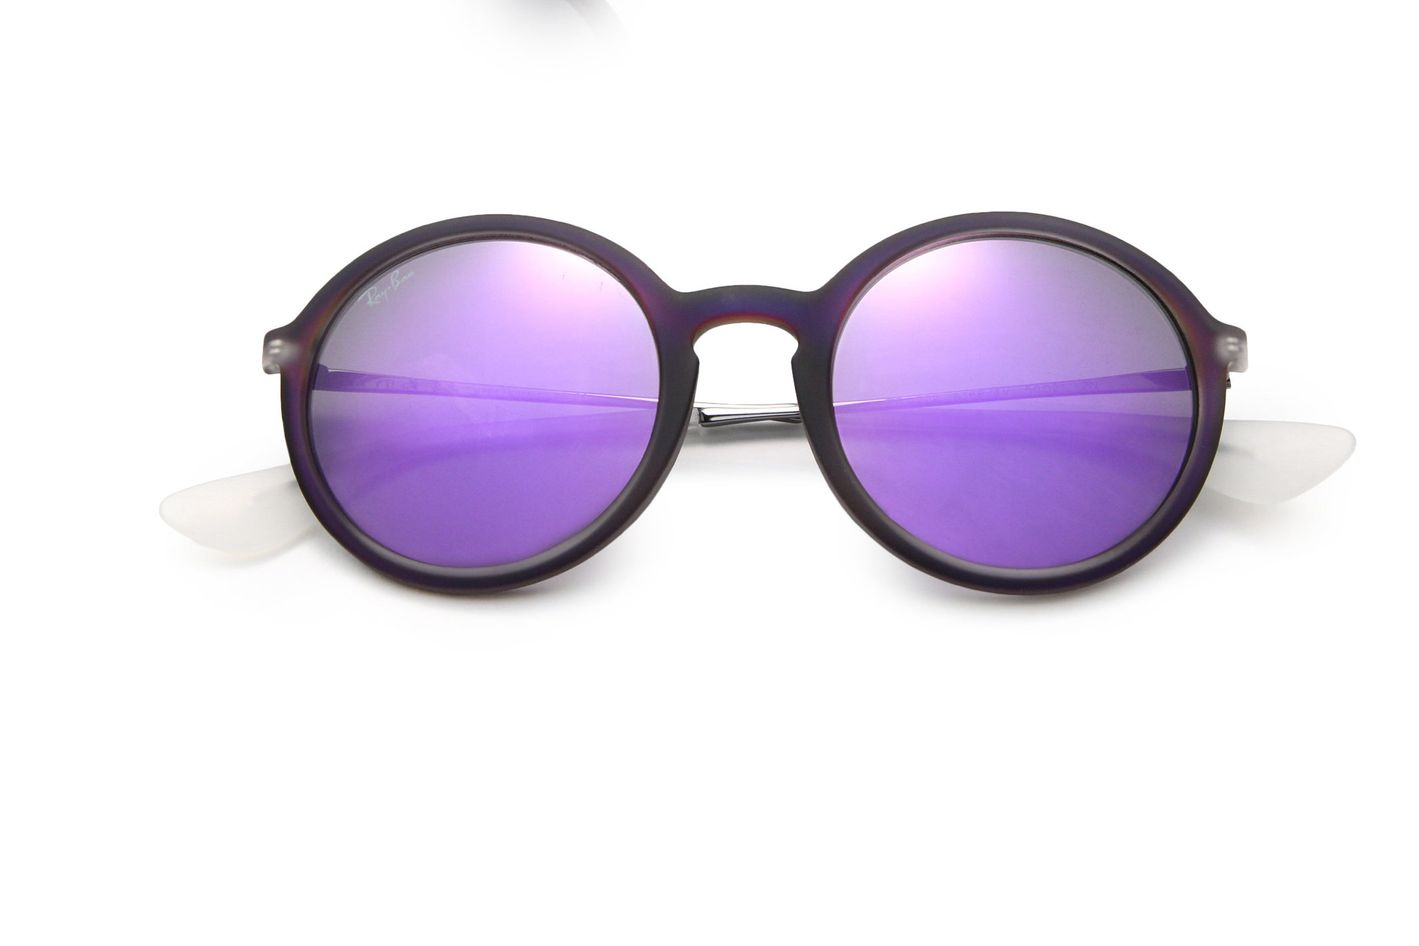 Ray-Ban Mirrored 50Mm Round Sunglasses